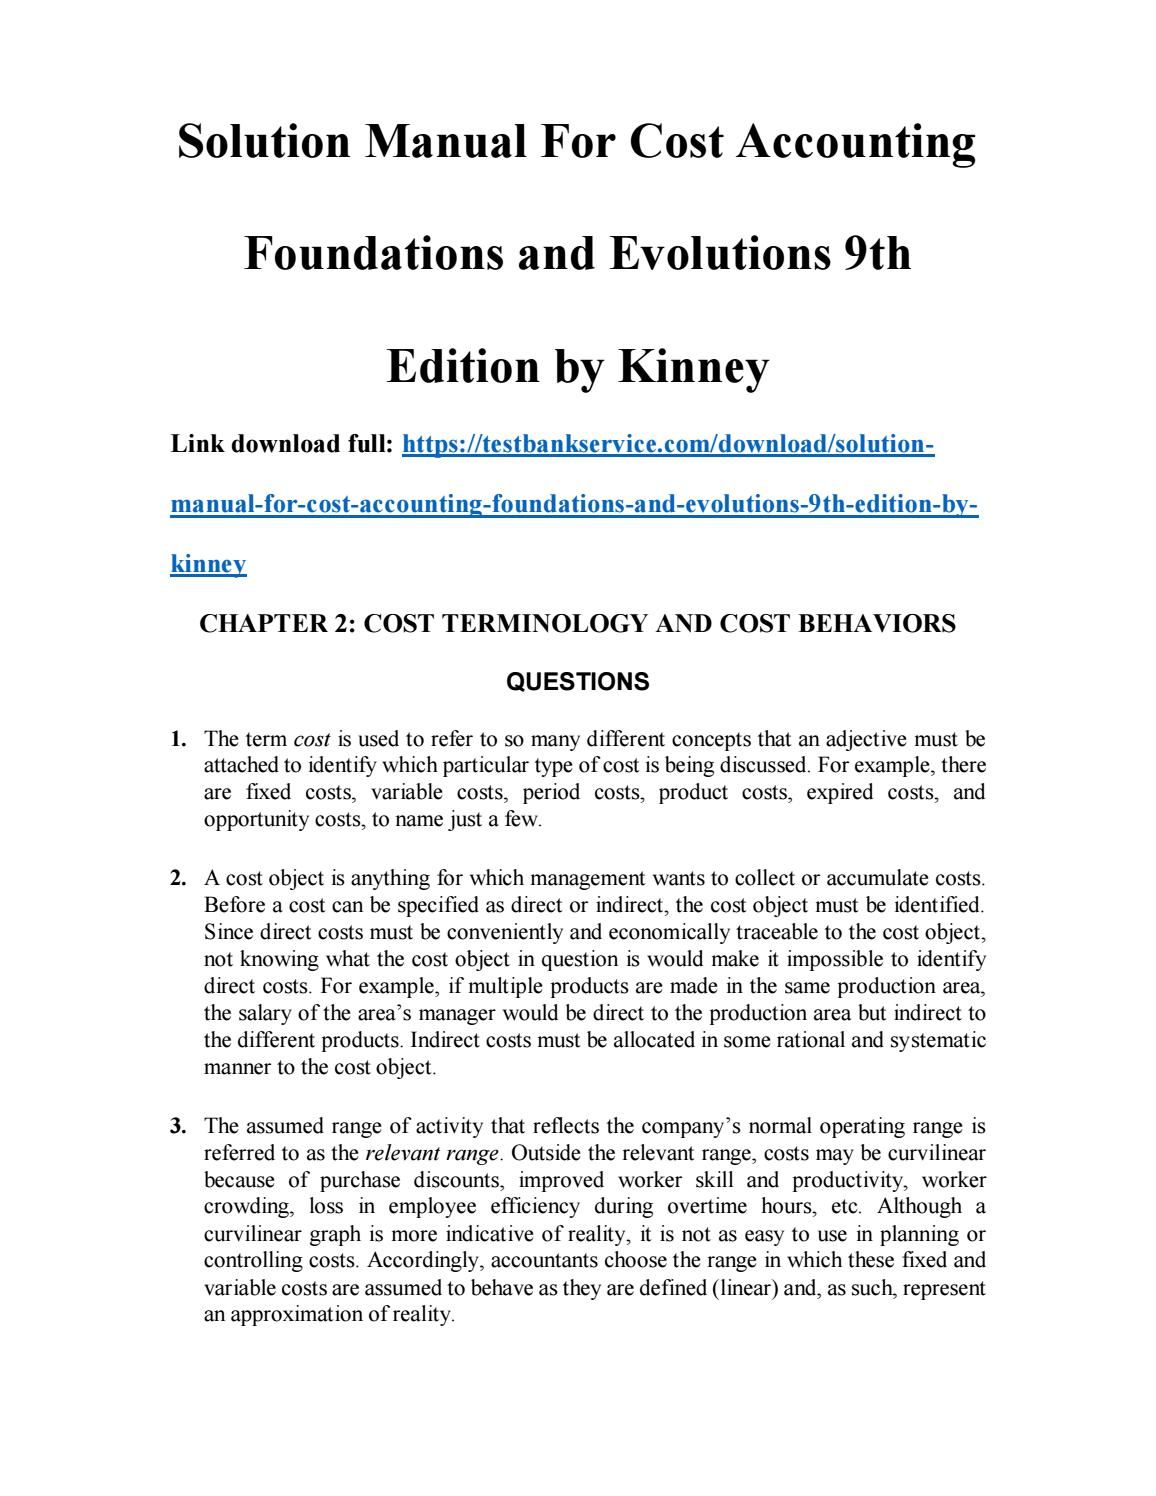 Solution Manual for Cost Accounting Foundations and Evolutions 9th Edition  by Kinney